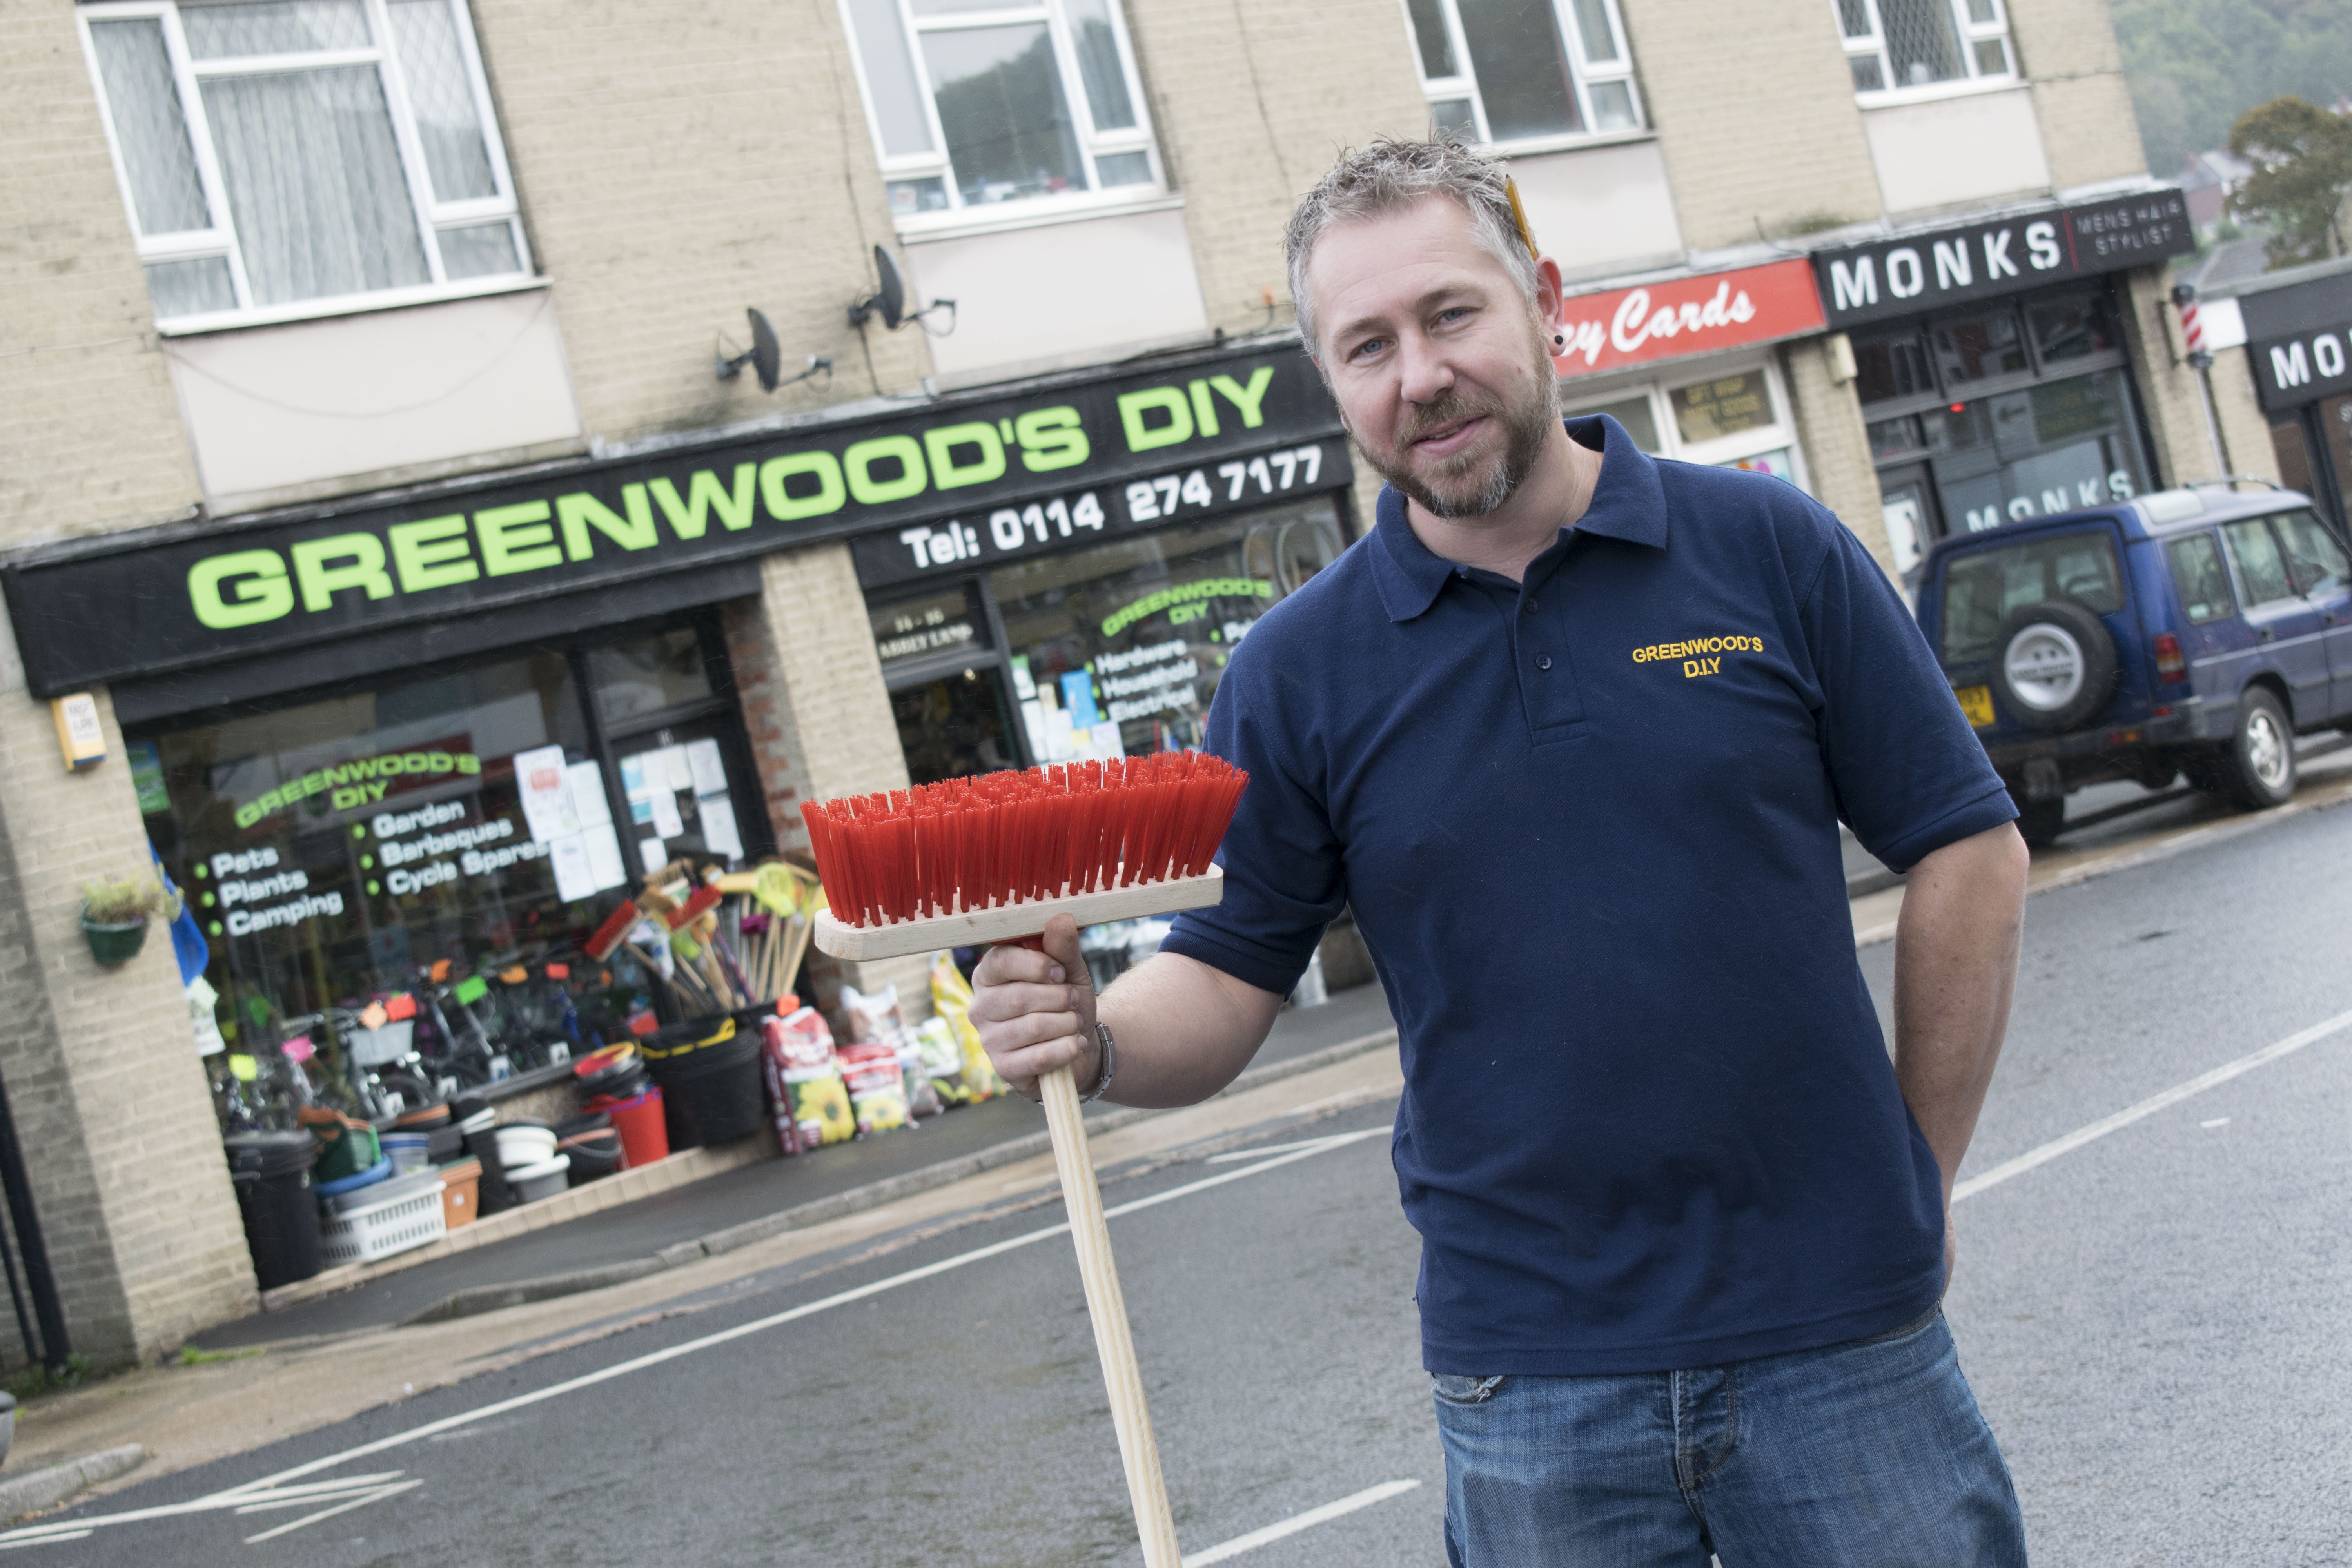 Nic outside the shop with a broom